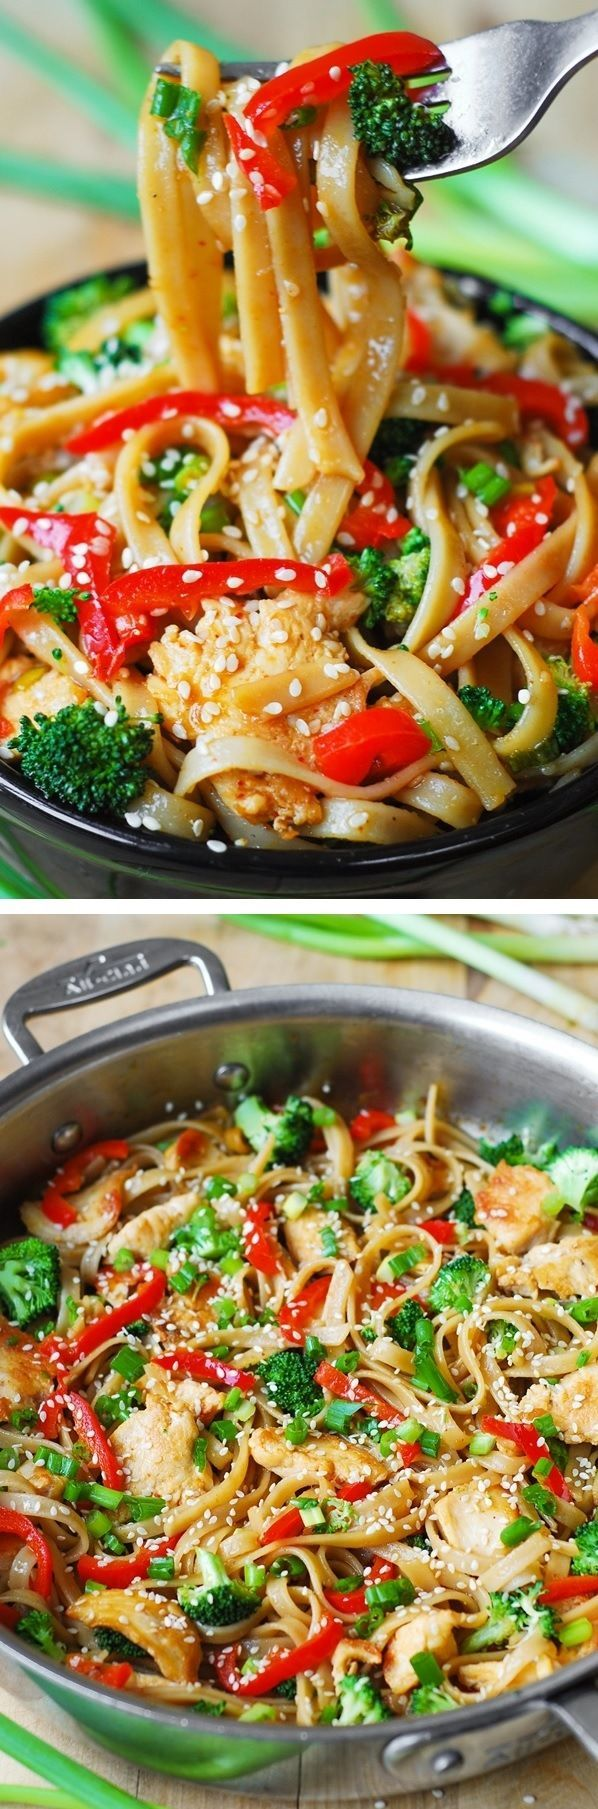 Asian Sesame Chicken & Noodles in a homemade Asian sauce – delish and easy-to-make! Thinly sliced bell peppers, blanched broccoli, grilled or seared chicken, toasted sesame seeds.